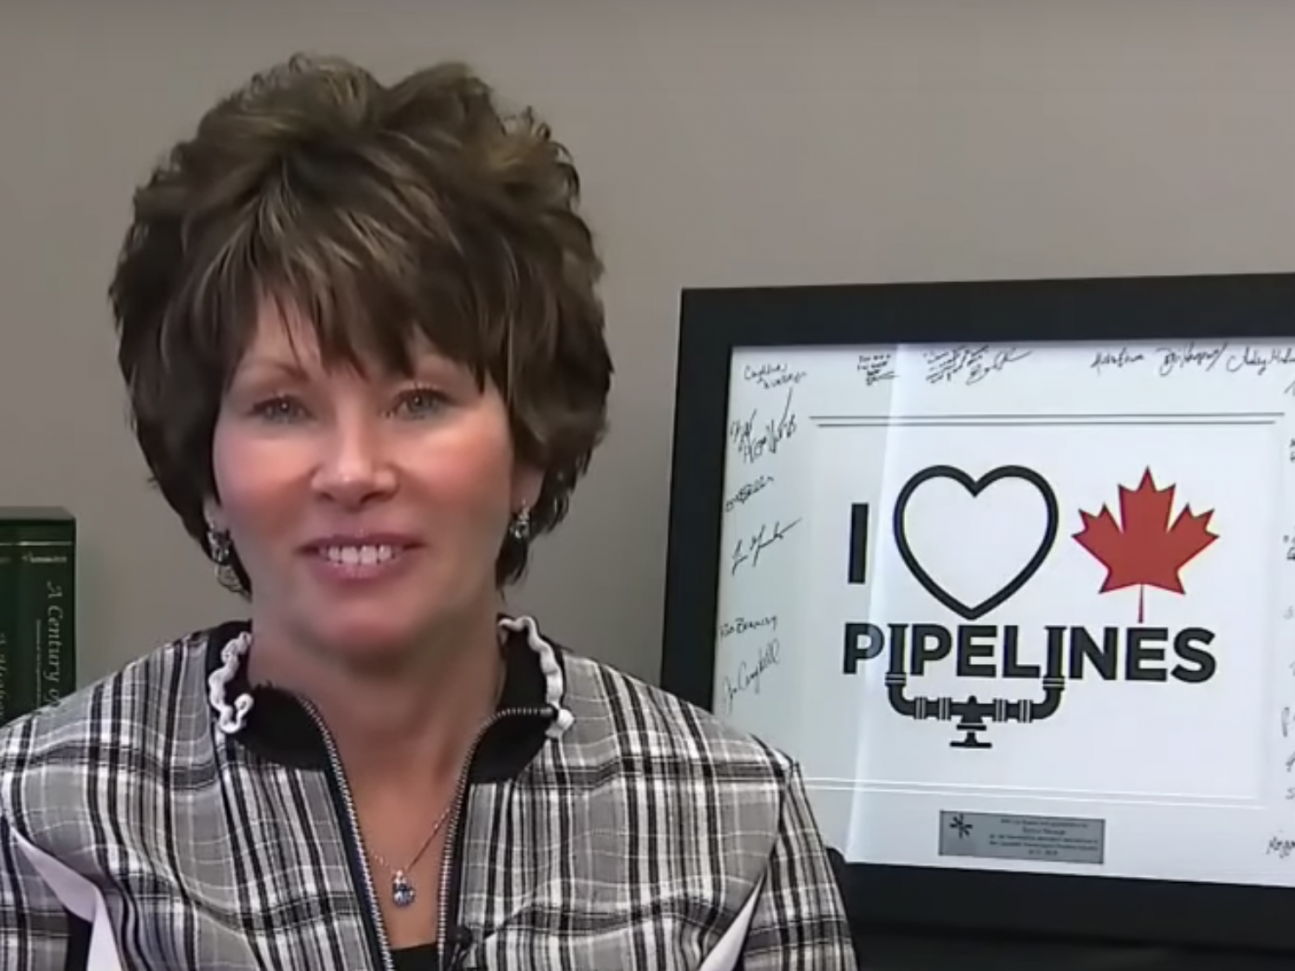 Canadian politician says now is 'great time' to build oil pipelines because lockdown prevents protests